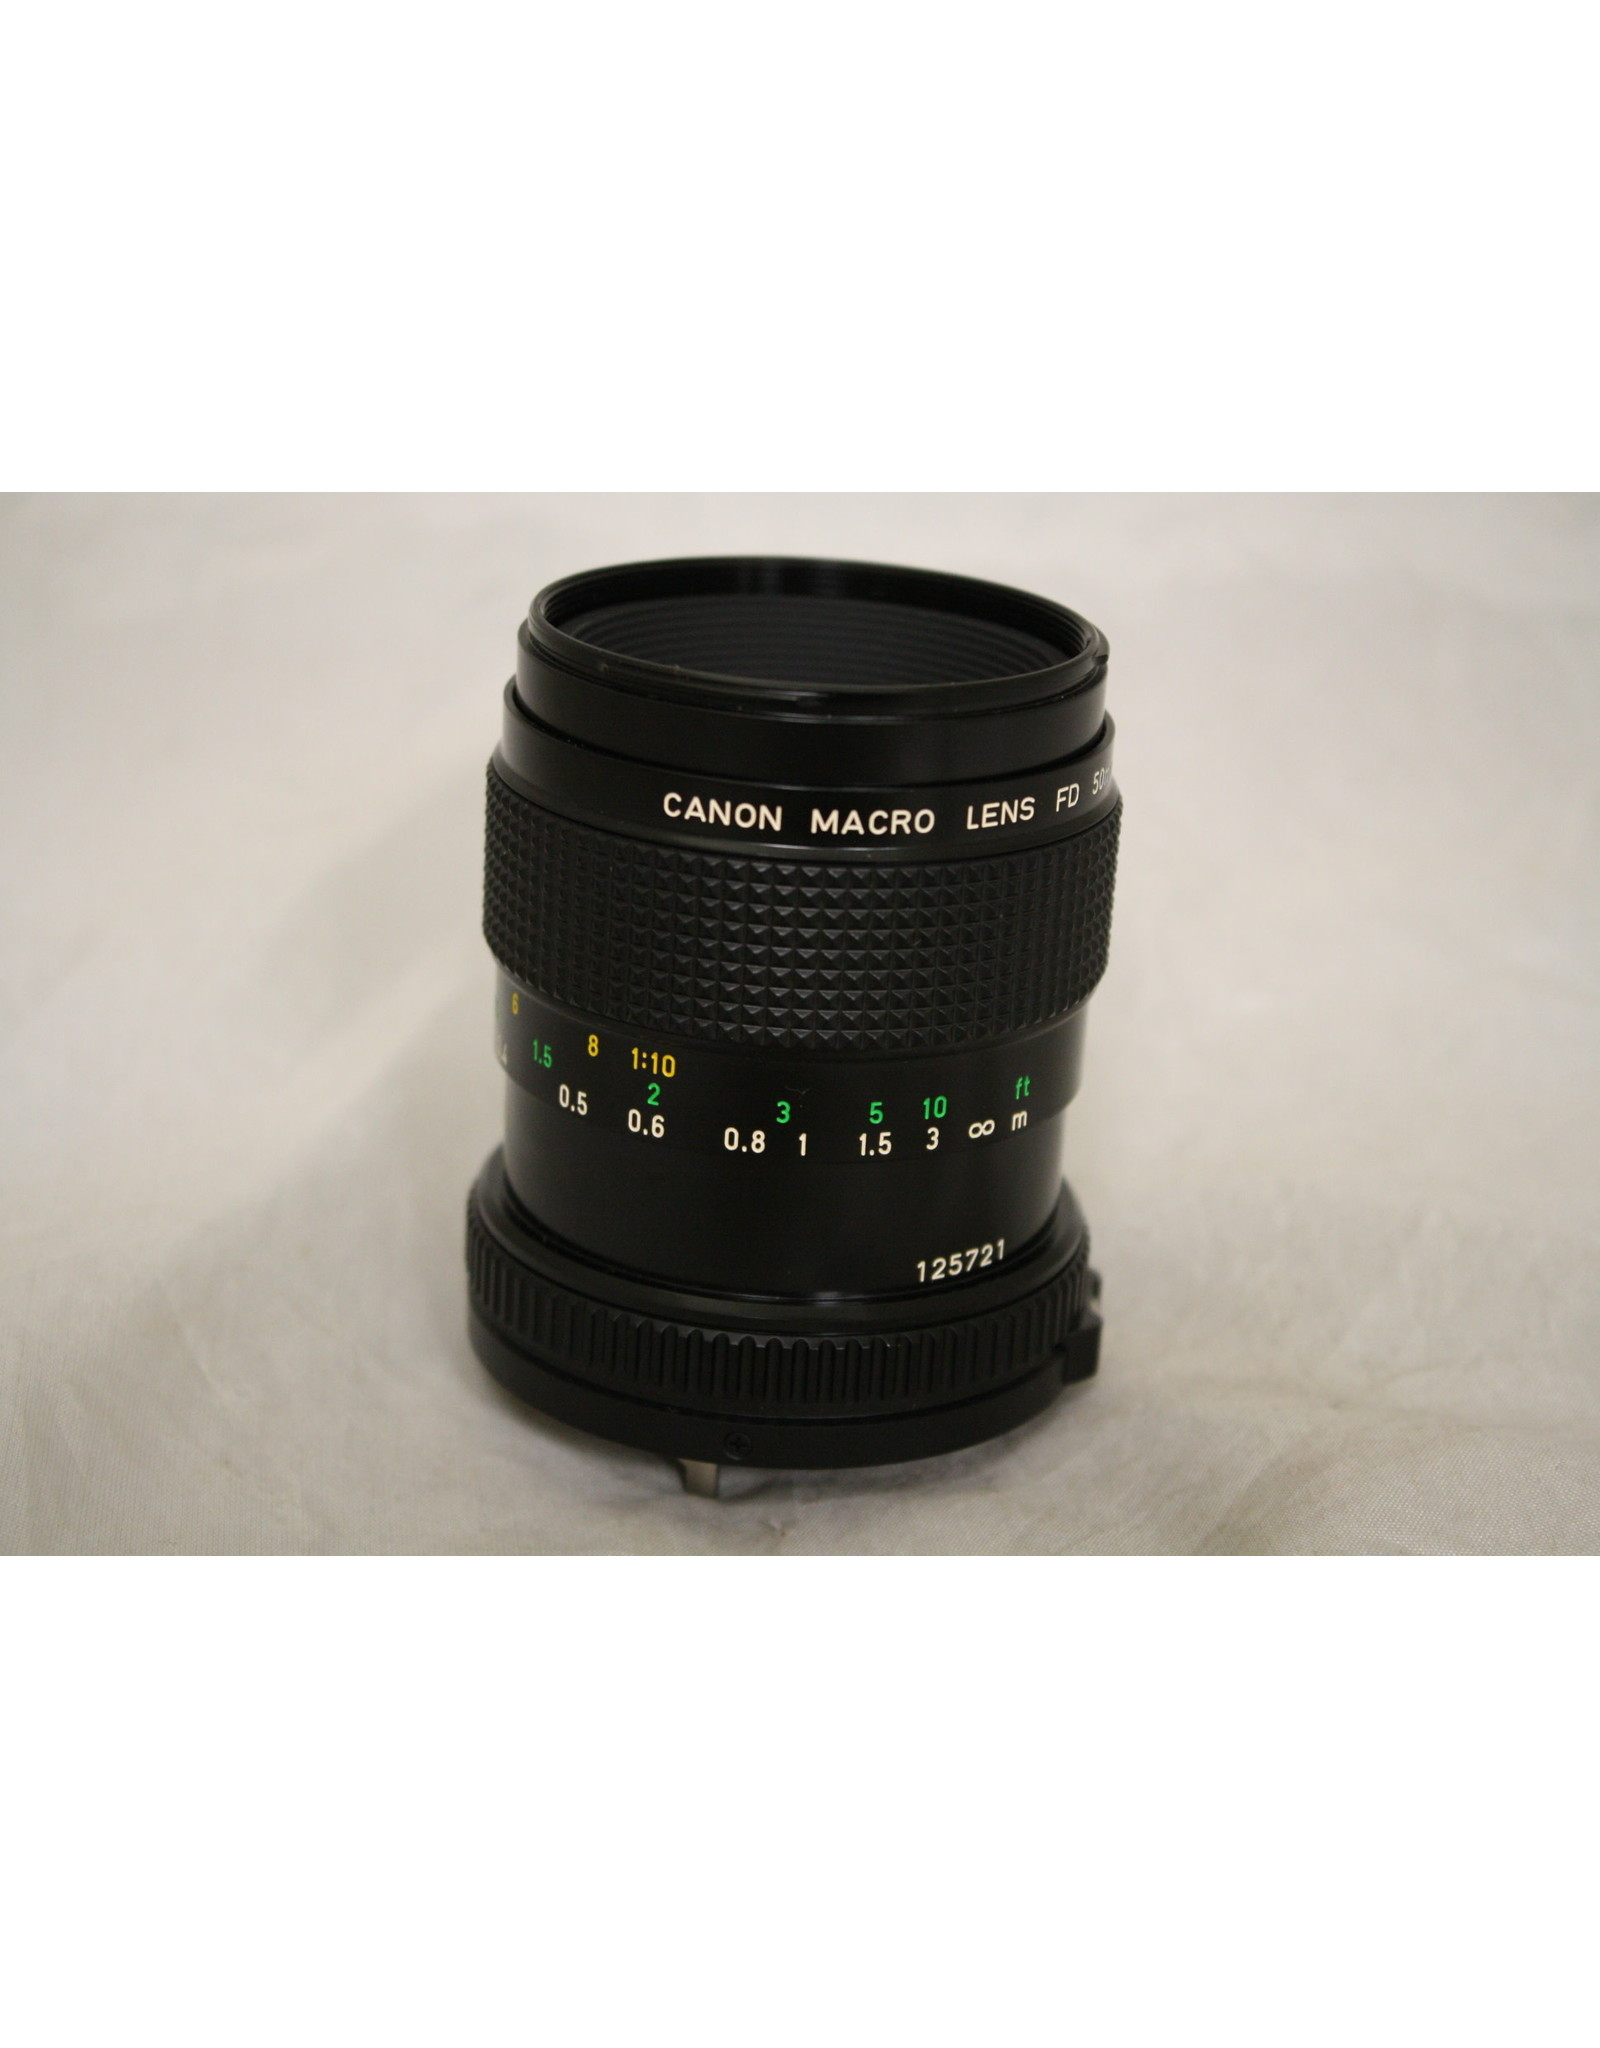 Canon 50mm Macro Lens For 35mm Film Cameras - 1:3.5